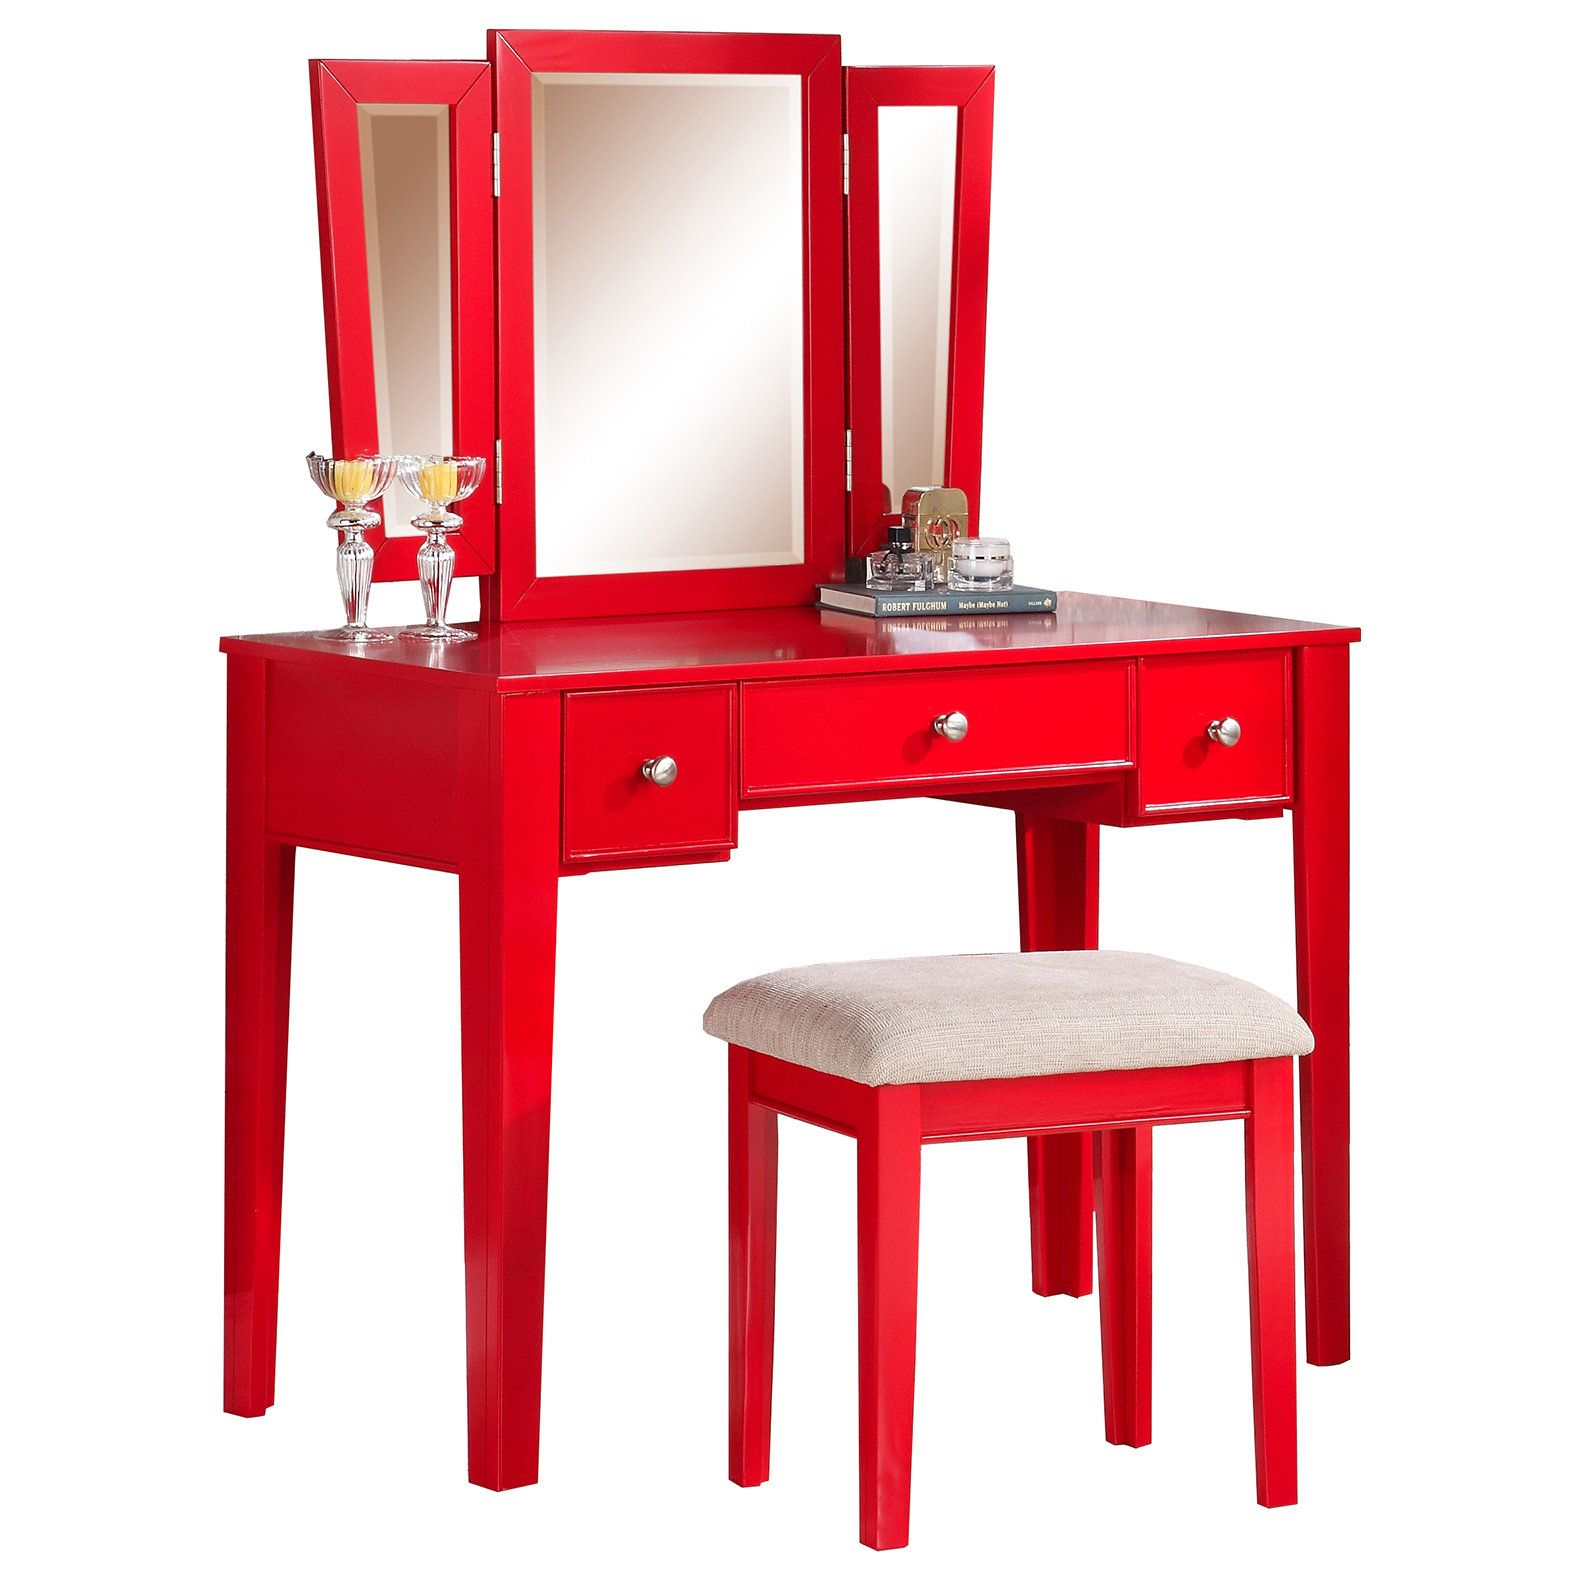 Modern dressing table mirrors runcorn vanity set with mirror  pinterest  vanities and products